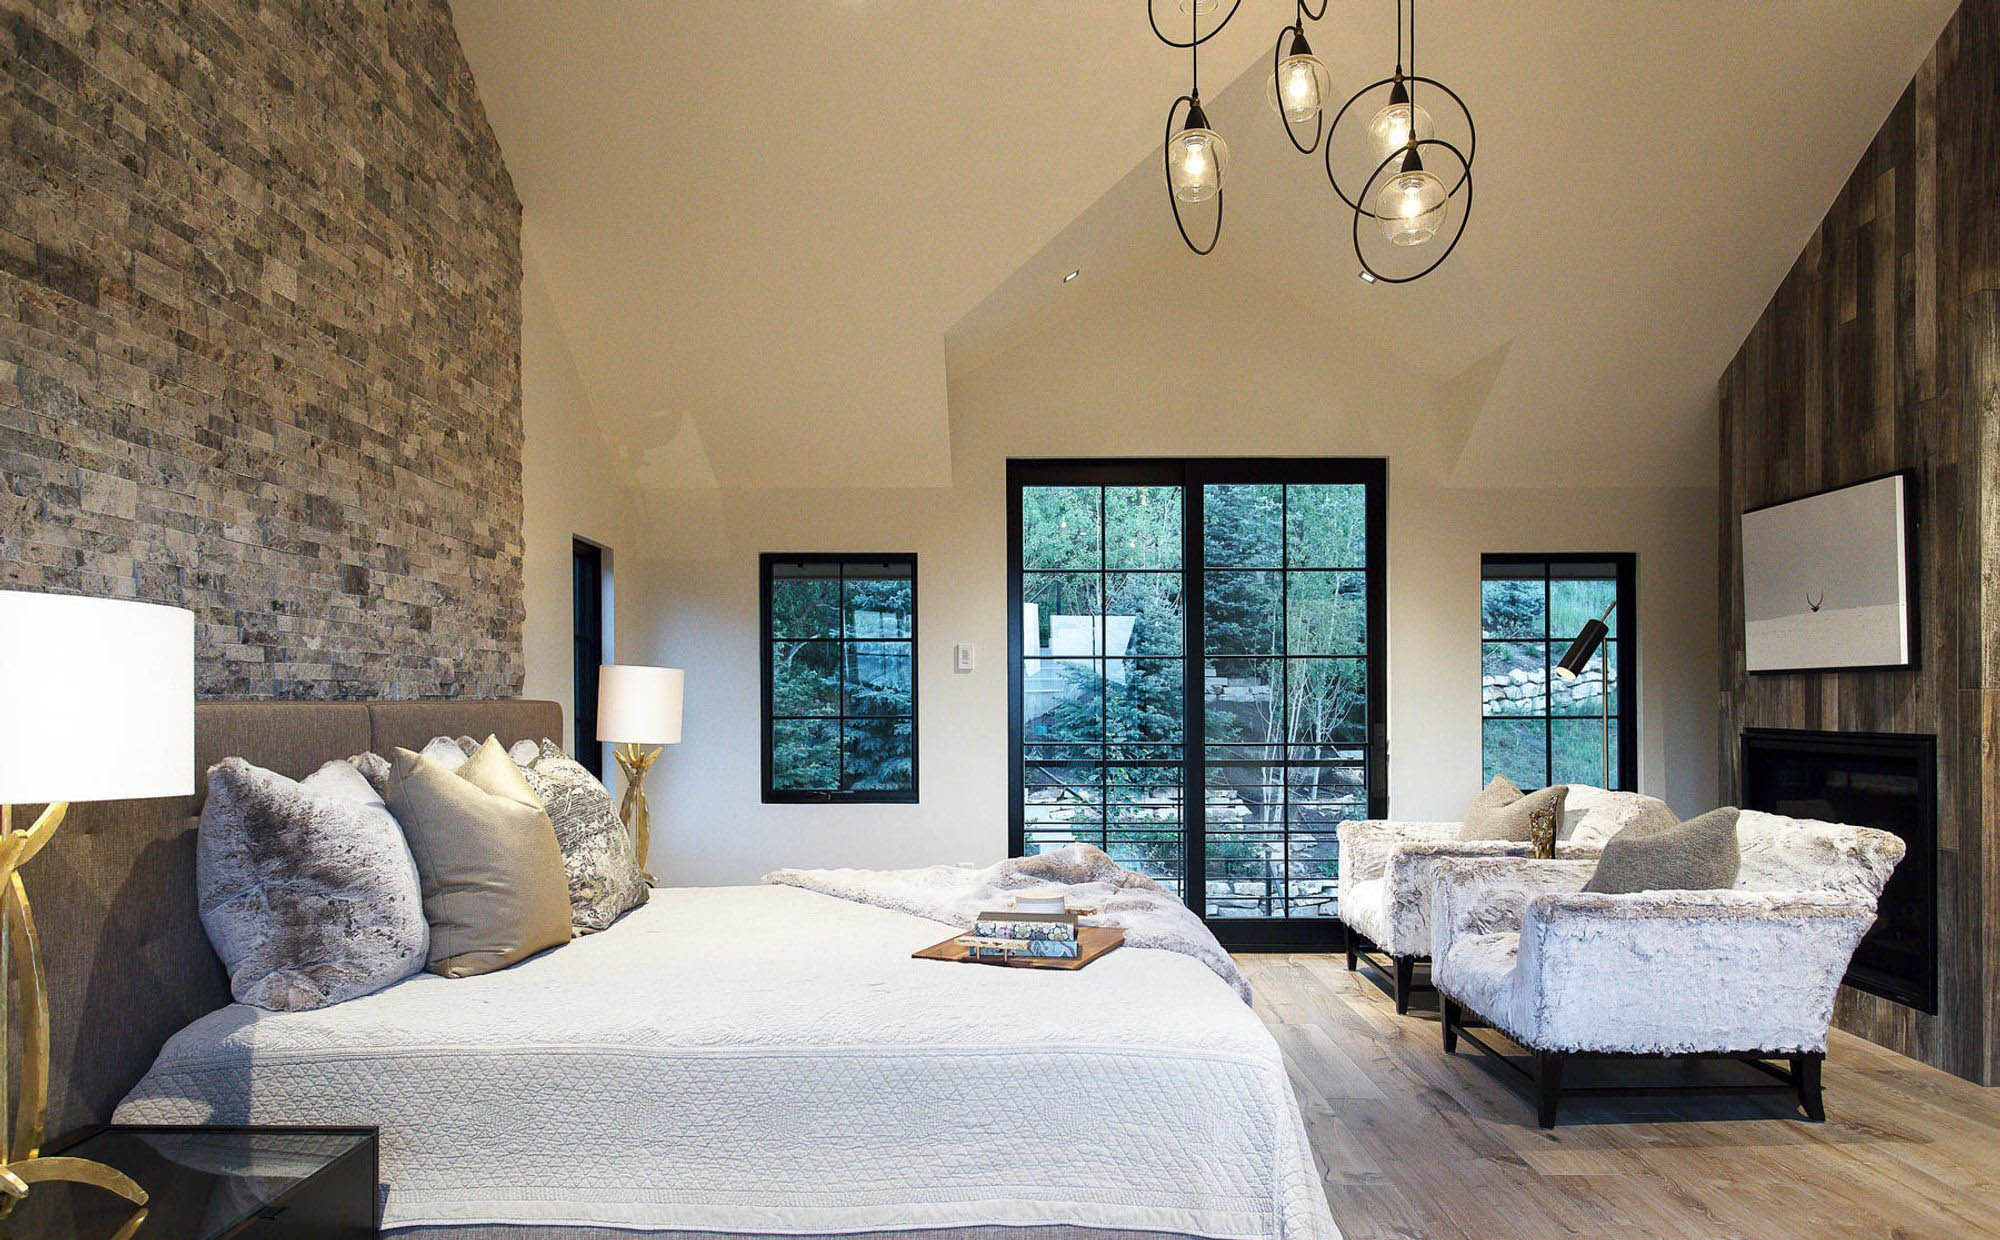 Modern bedroom with rustic vertical wall paneling.